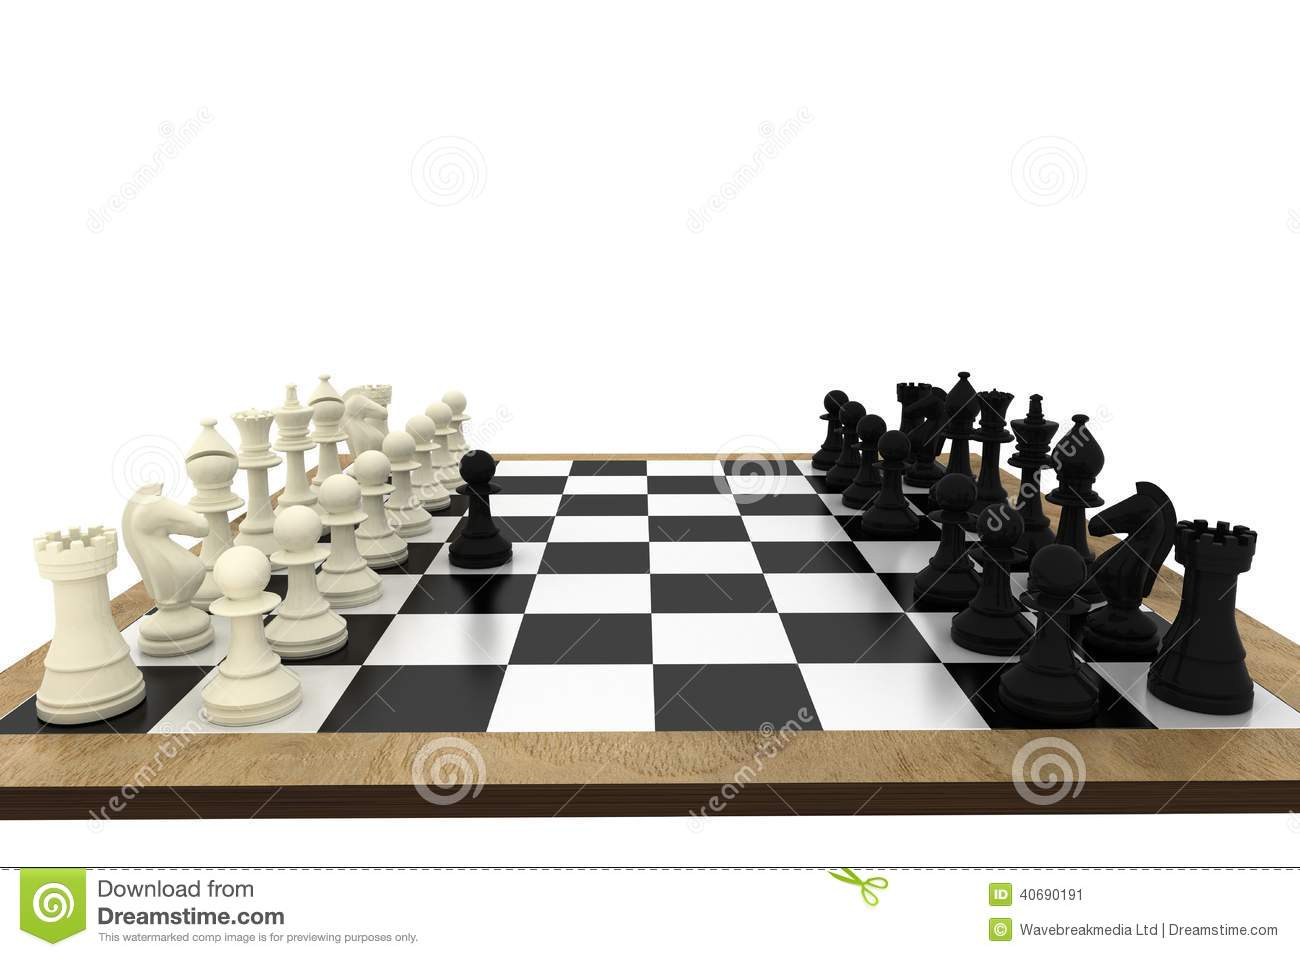 White Pawn Challenging Black Chess Pieces Royalty-Free ...